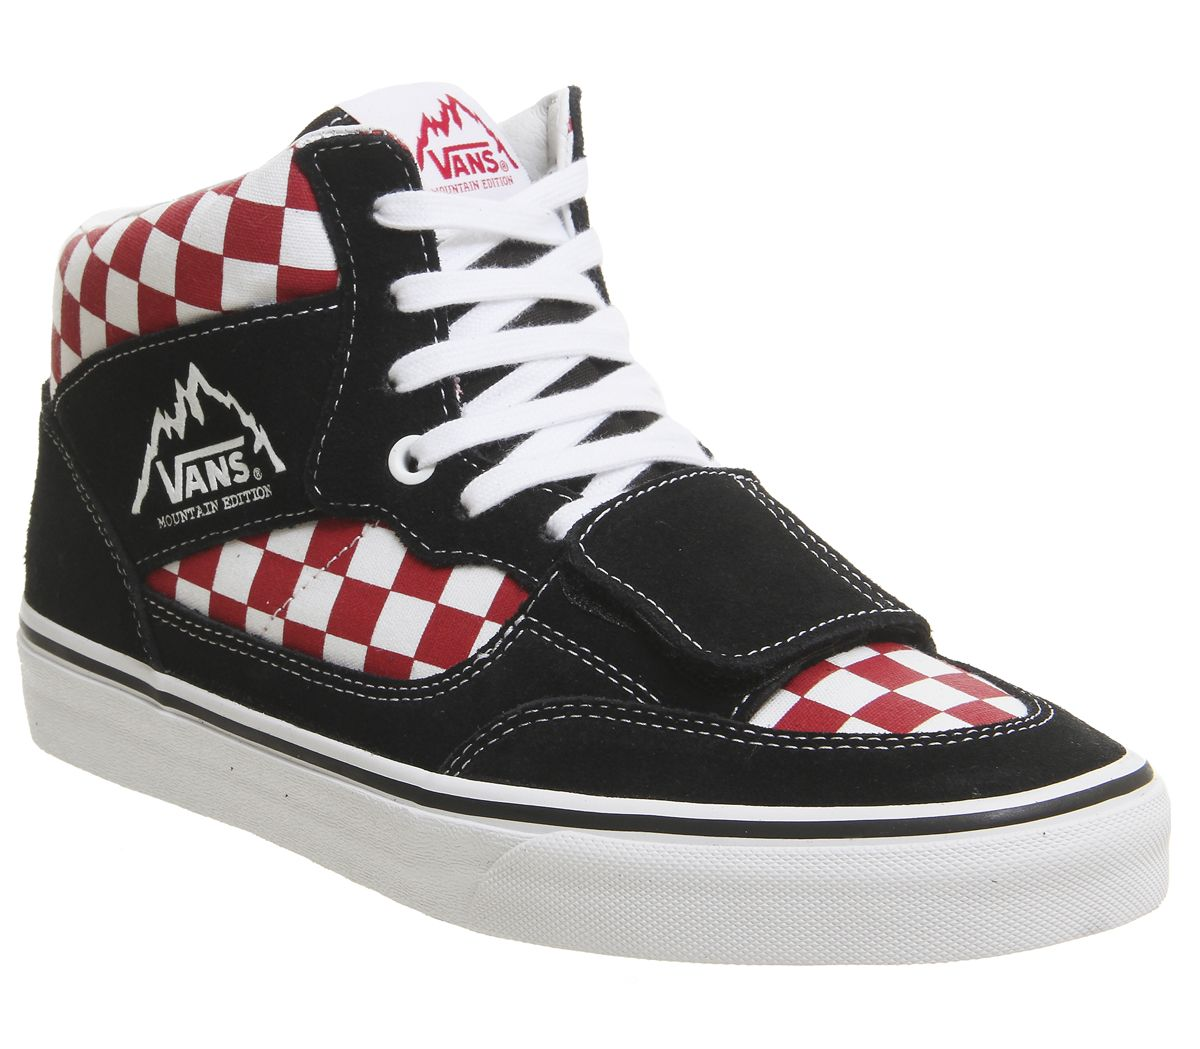 ff6b207573 Vans Mountain Edition Trainers Black Red Checkerboard - His trainers